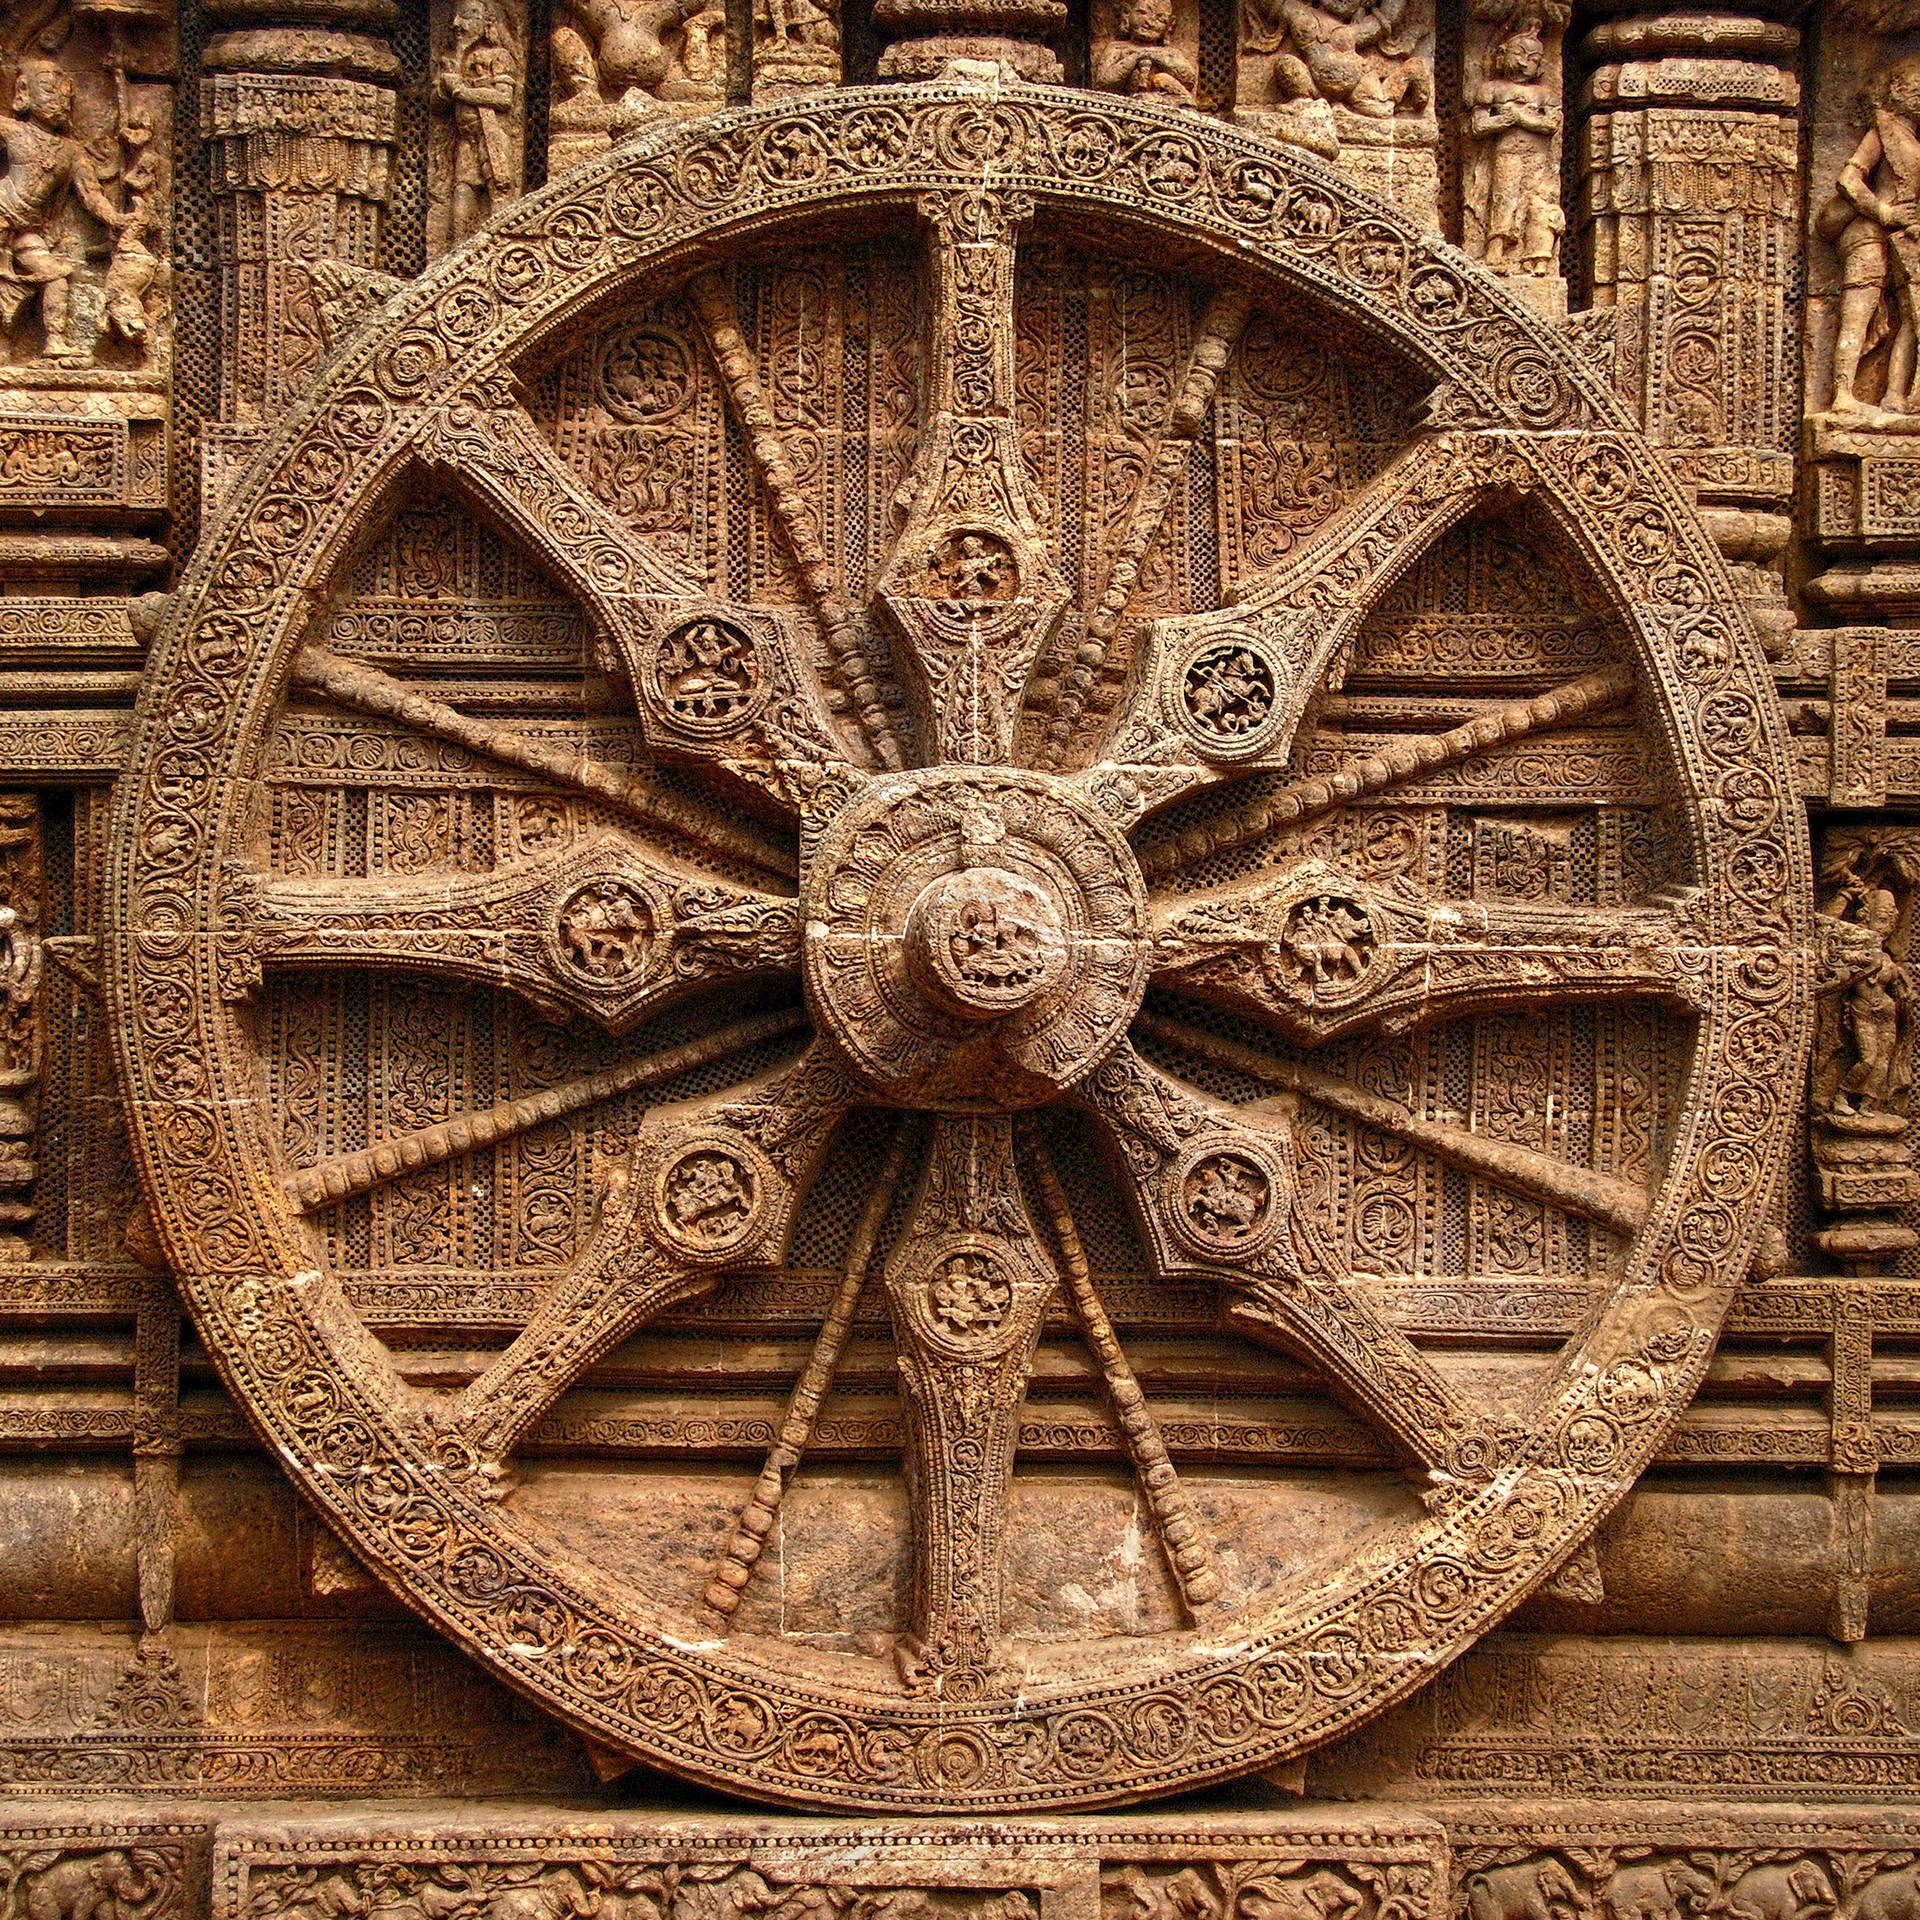 Wheel of Architecture